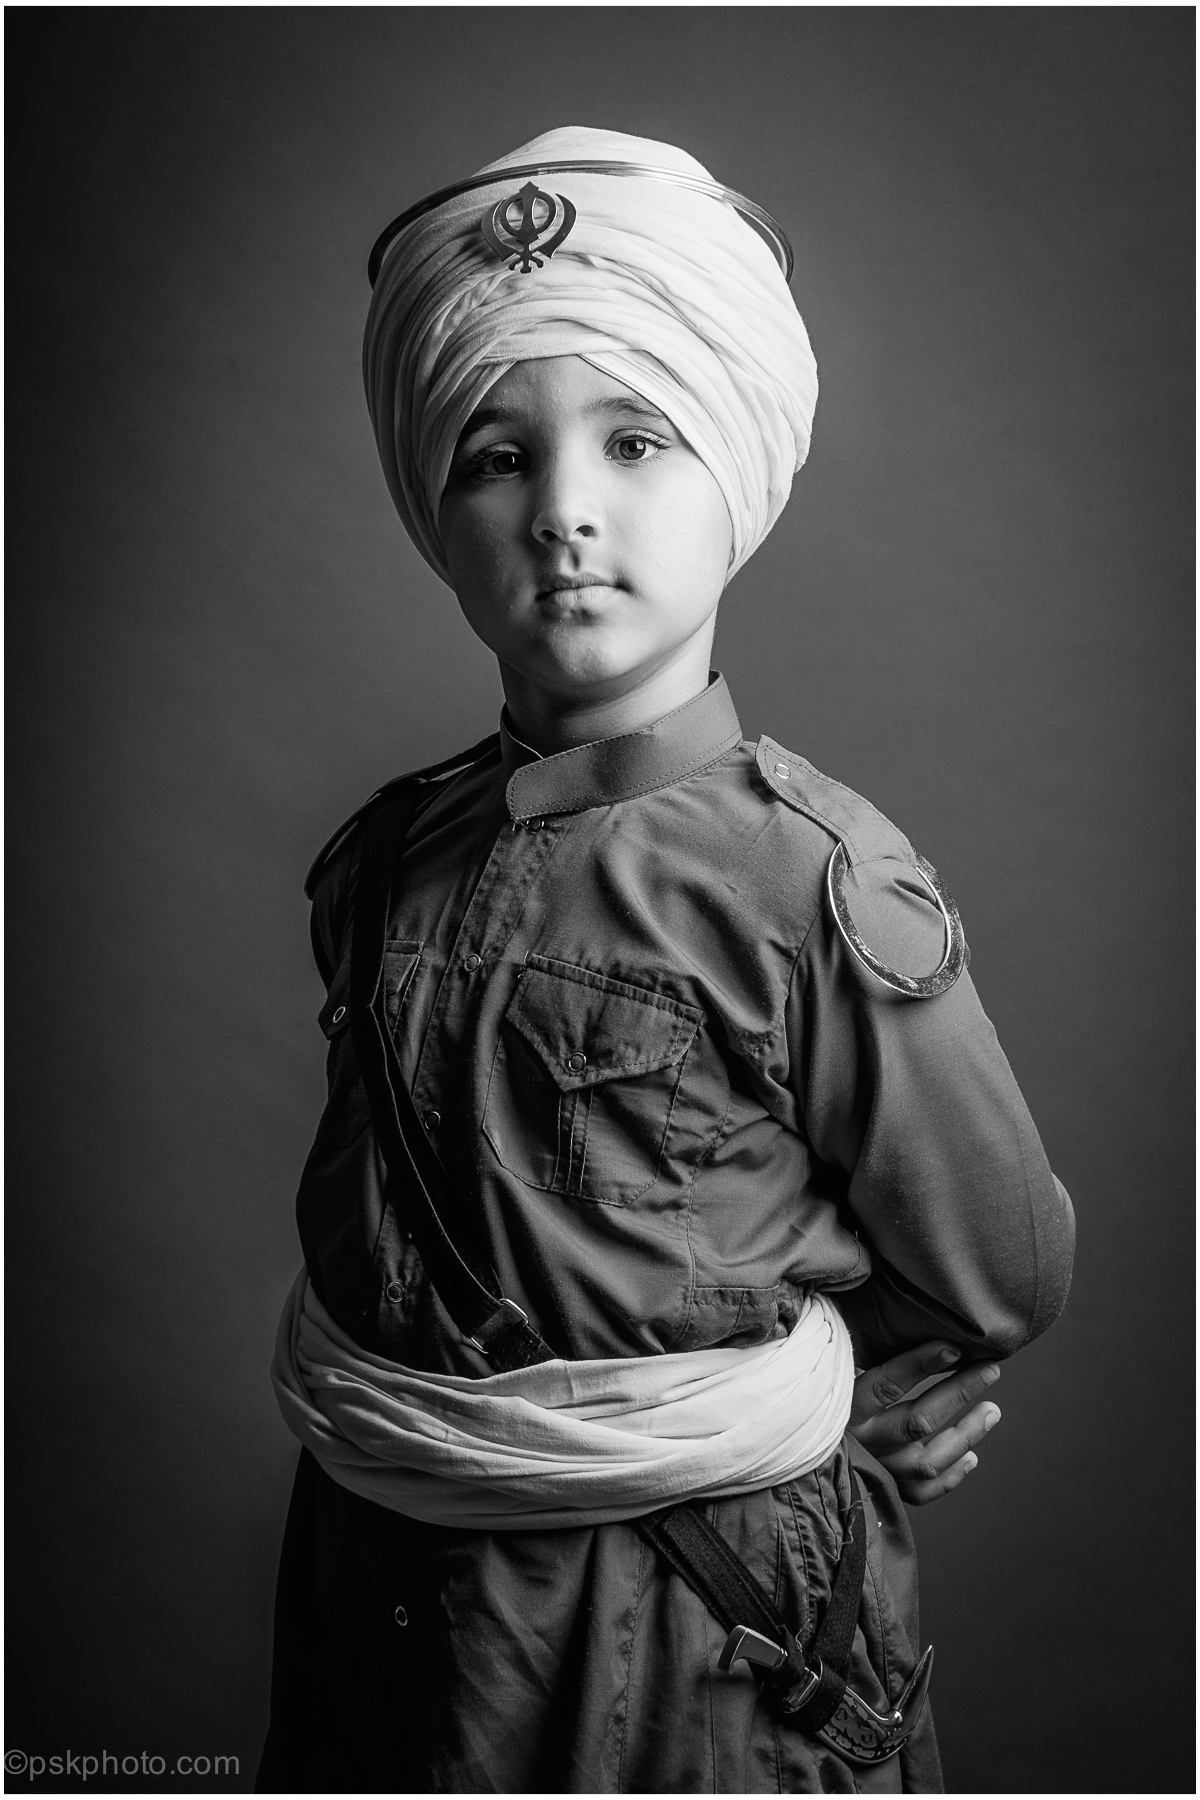 A young Sikh boy pictured wearing Sikhi Saroop e6efb936b3f